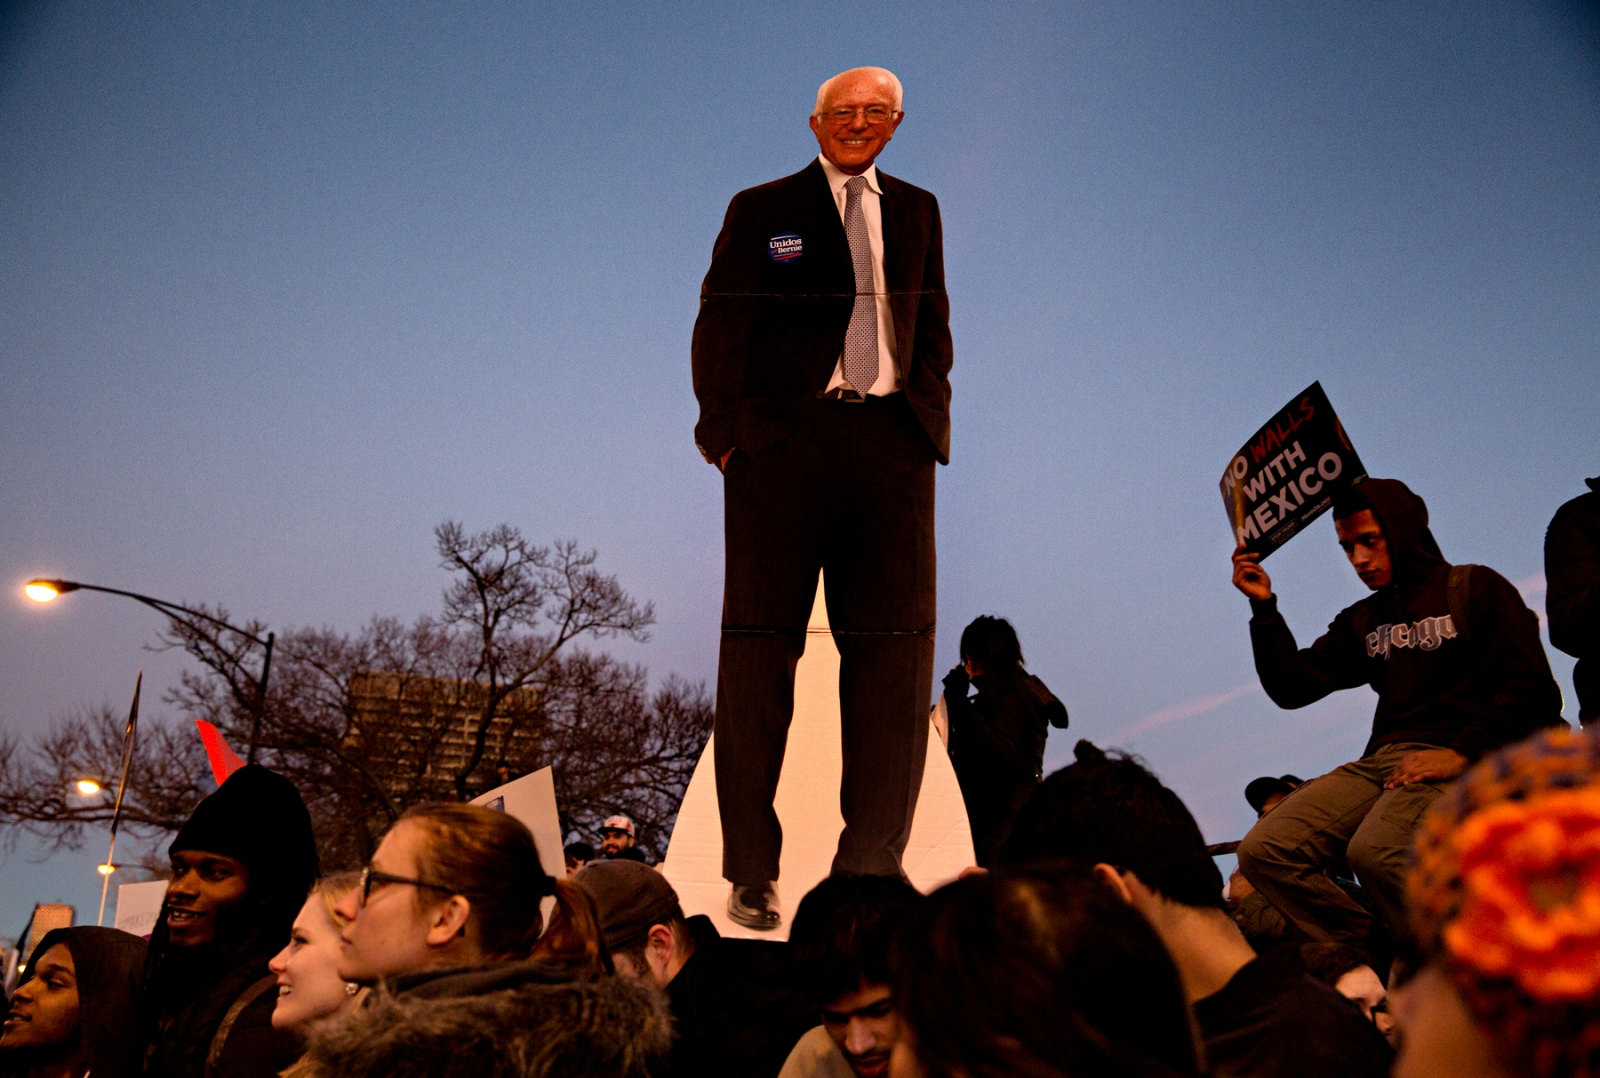 March 11, 2016 - Chicago, Illinois - Chicago protestors brandish signs and a cardboard cutout of Bernie Sanders in front of the University of Illinois's Pavilion where Donald Trump had scheduled an appearance. Due to the intensity of the protests and the UIC student's infiltration of the Pavilion, concerned about his security Trump cancelled his appearance.